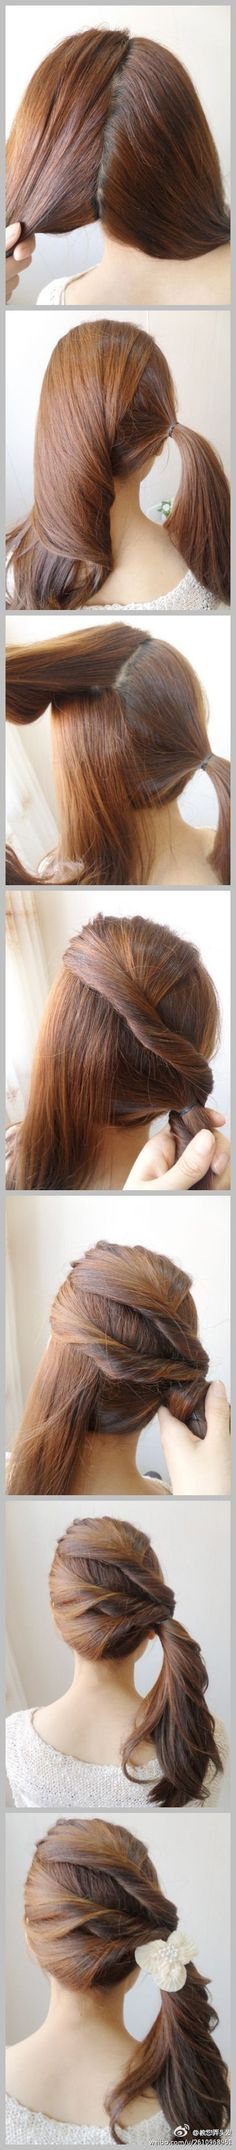 Great twist on a pony tail!